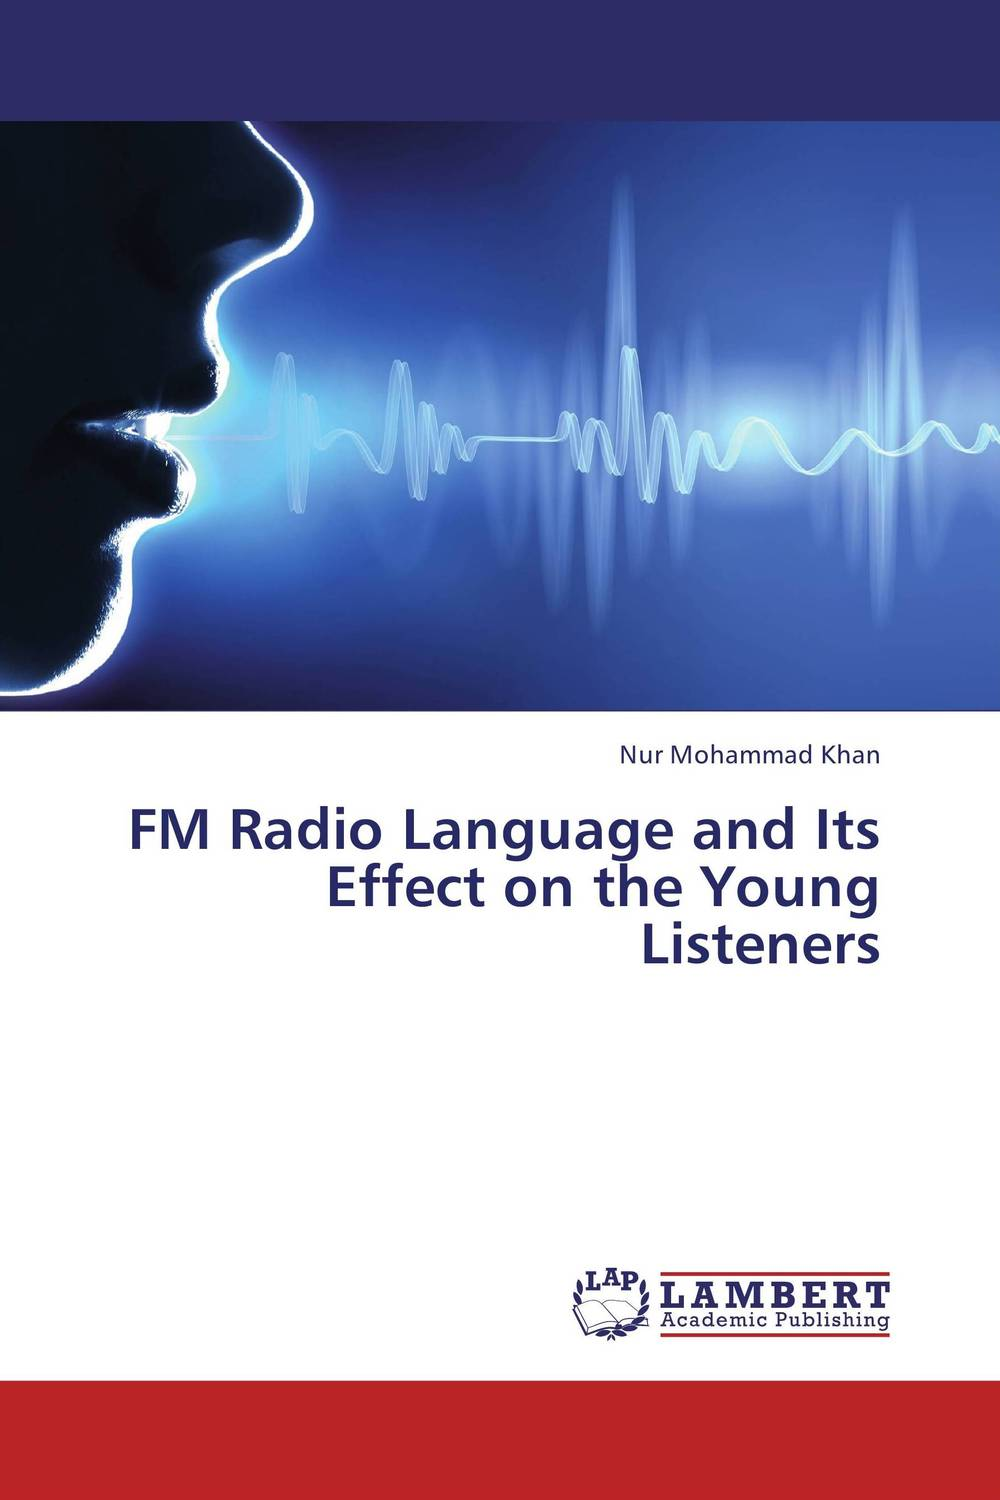 FM Radio Language and Its Effect on the Young Listeners language change and lexical variation in youth language